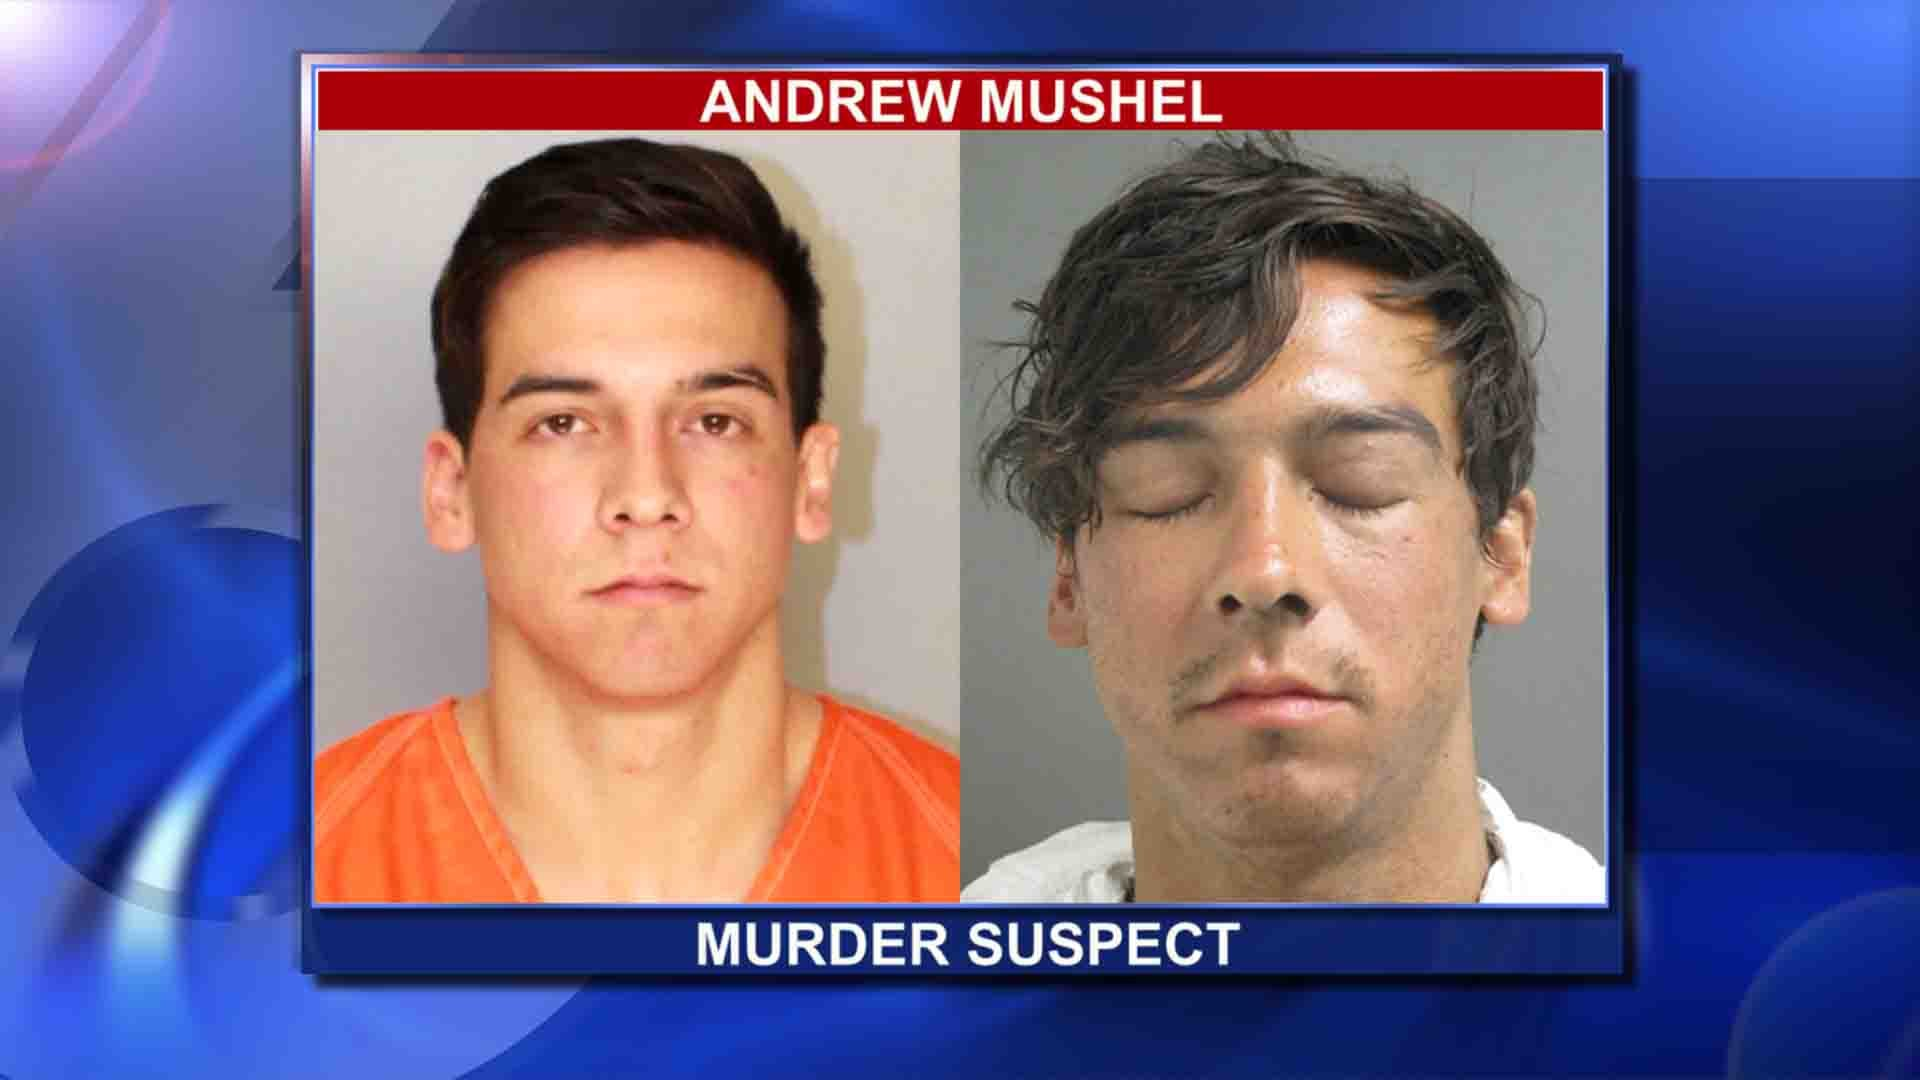 A San Patricio County judge ruled that Andrew Mushel was incompetent to stand trial at this time.